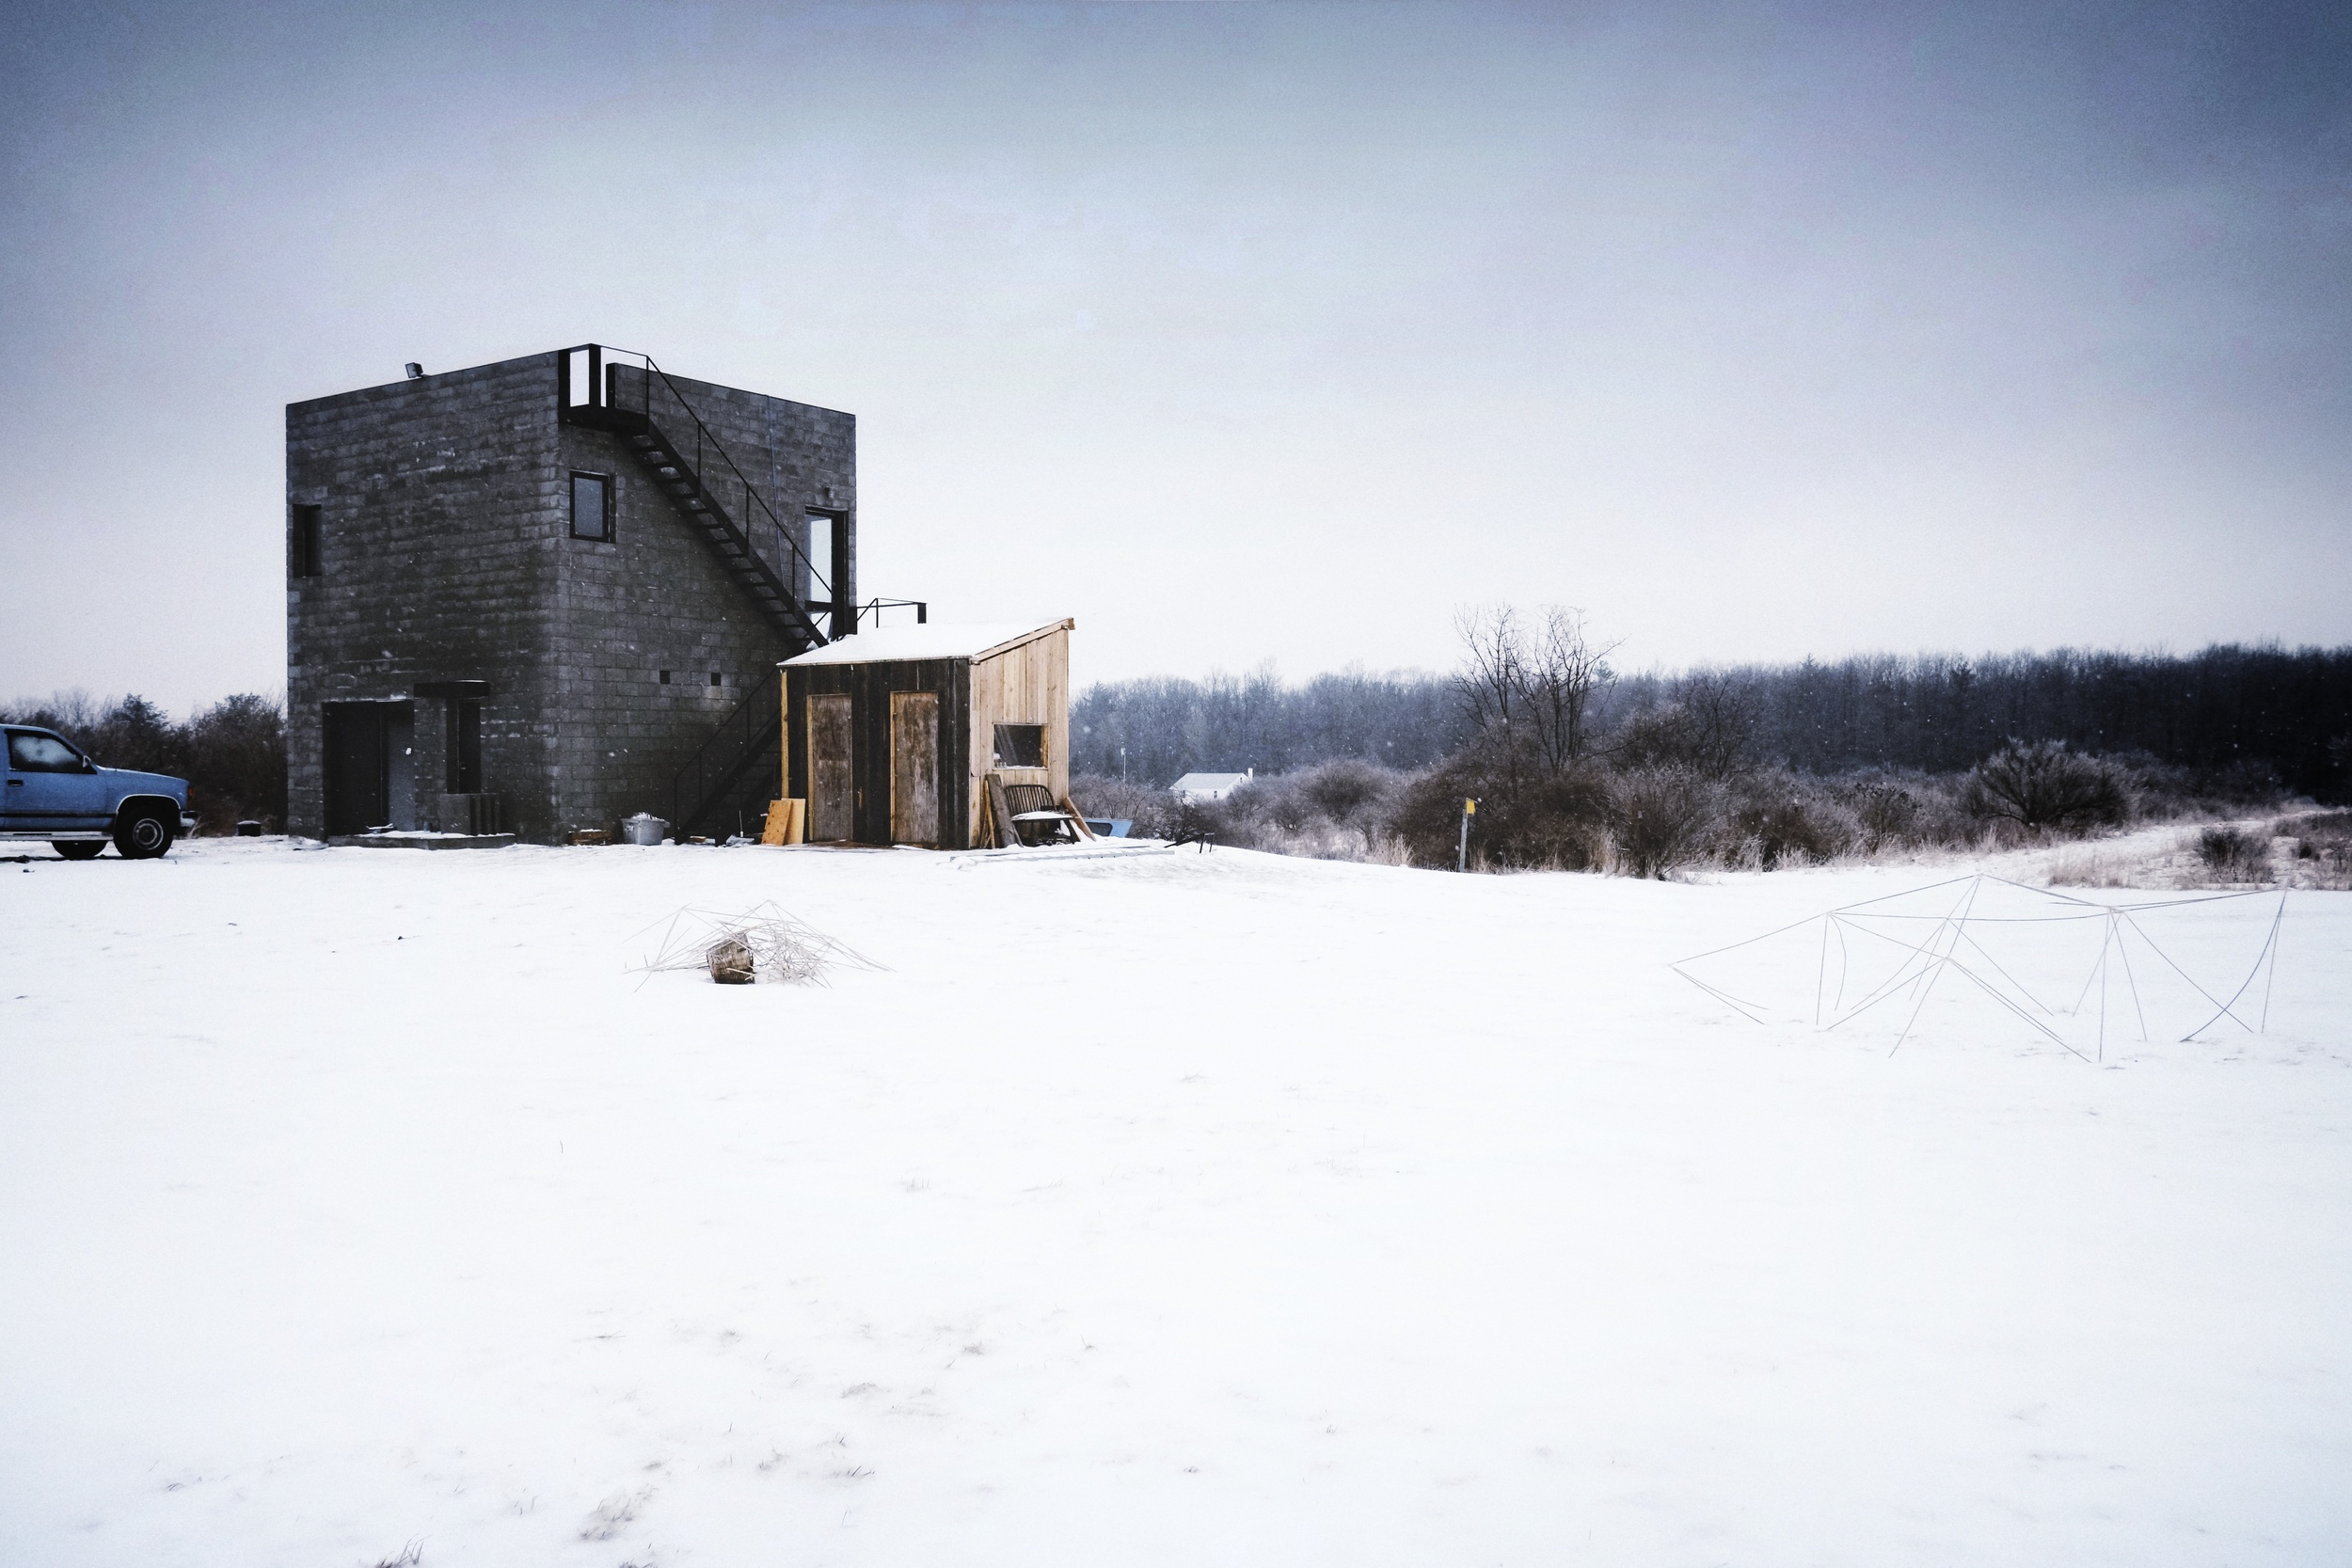 Cube House, designed by Simon Ungers. ( Ithaca, NY )